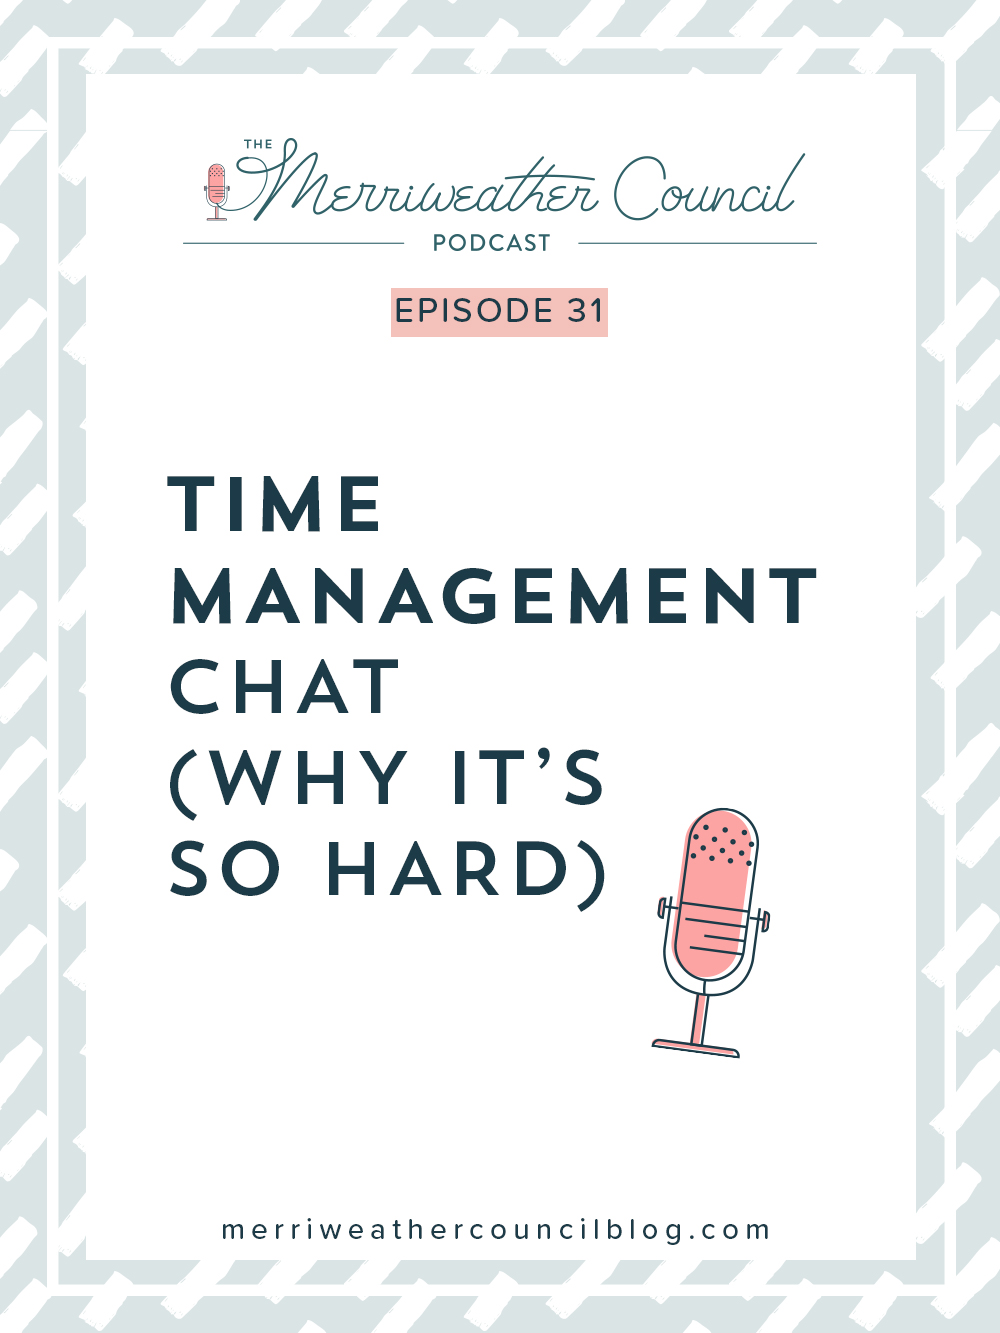 Time management and why it's so hard